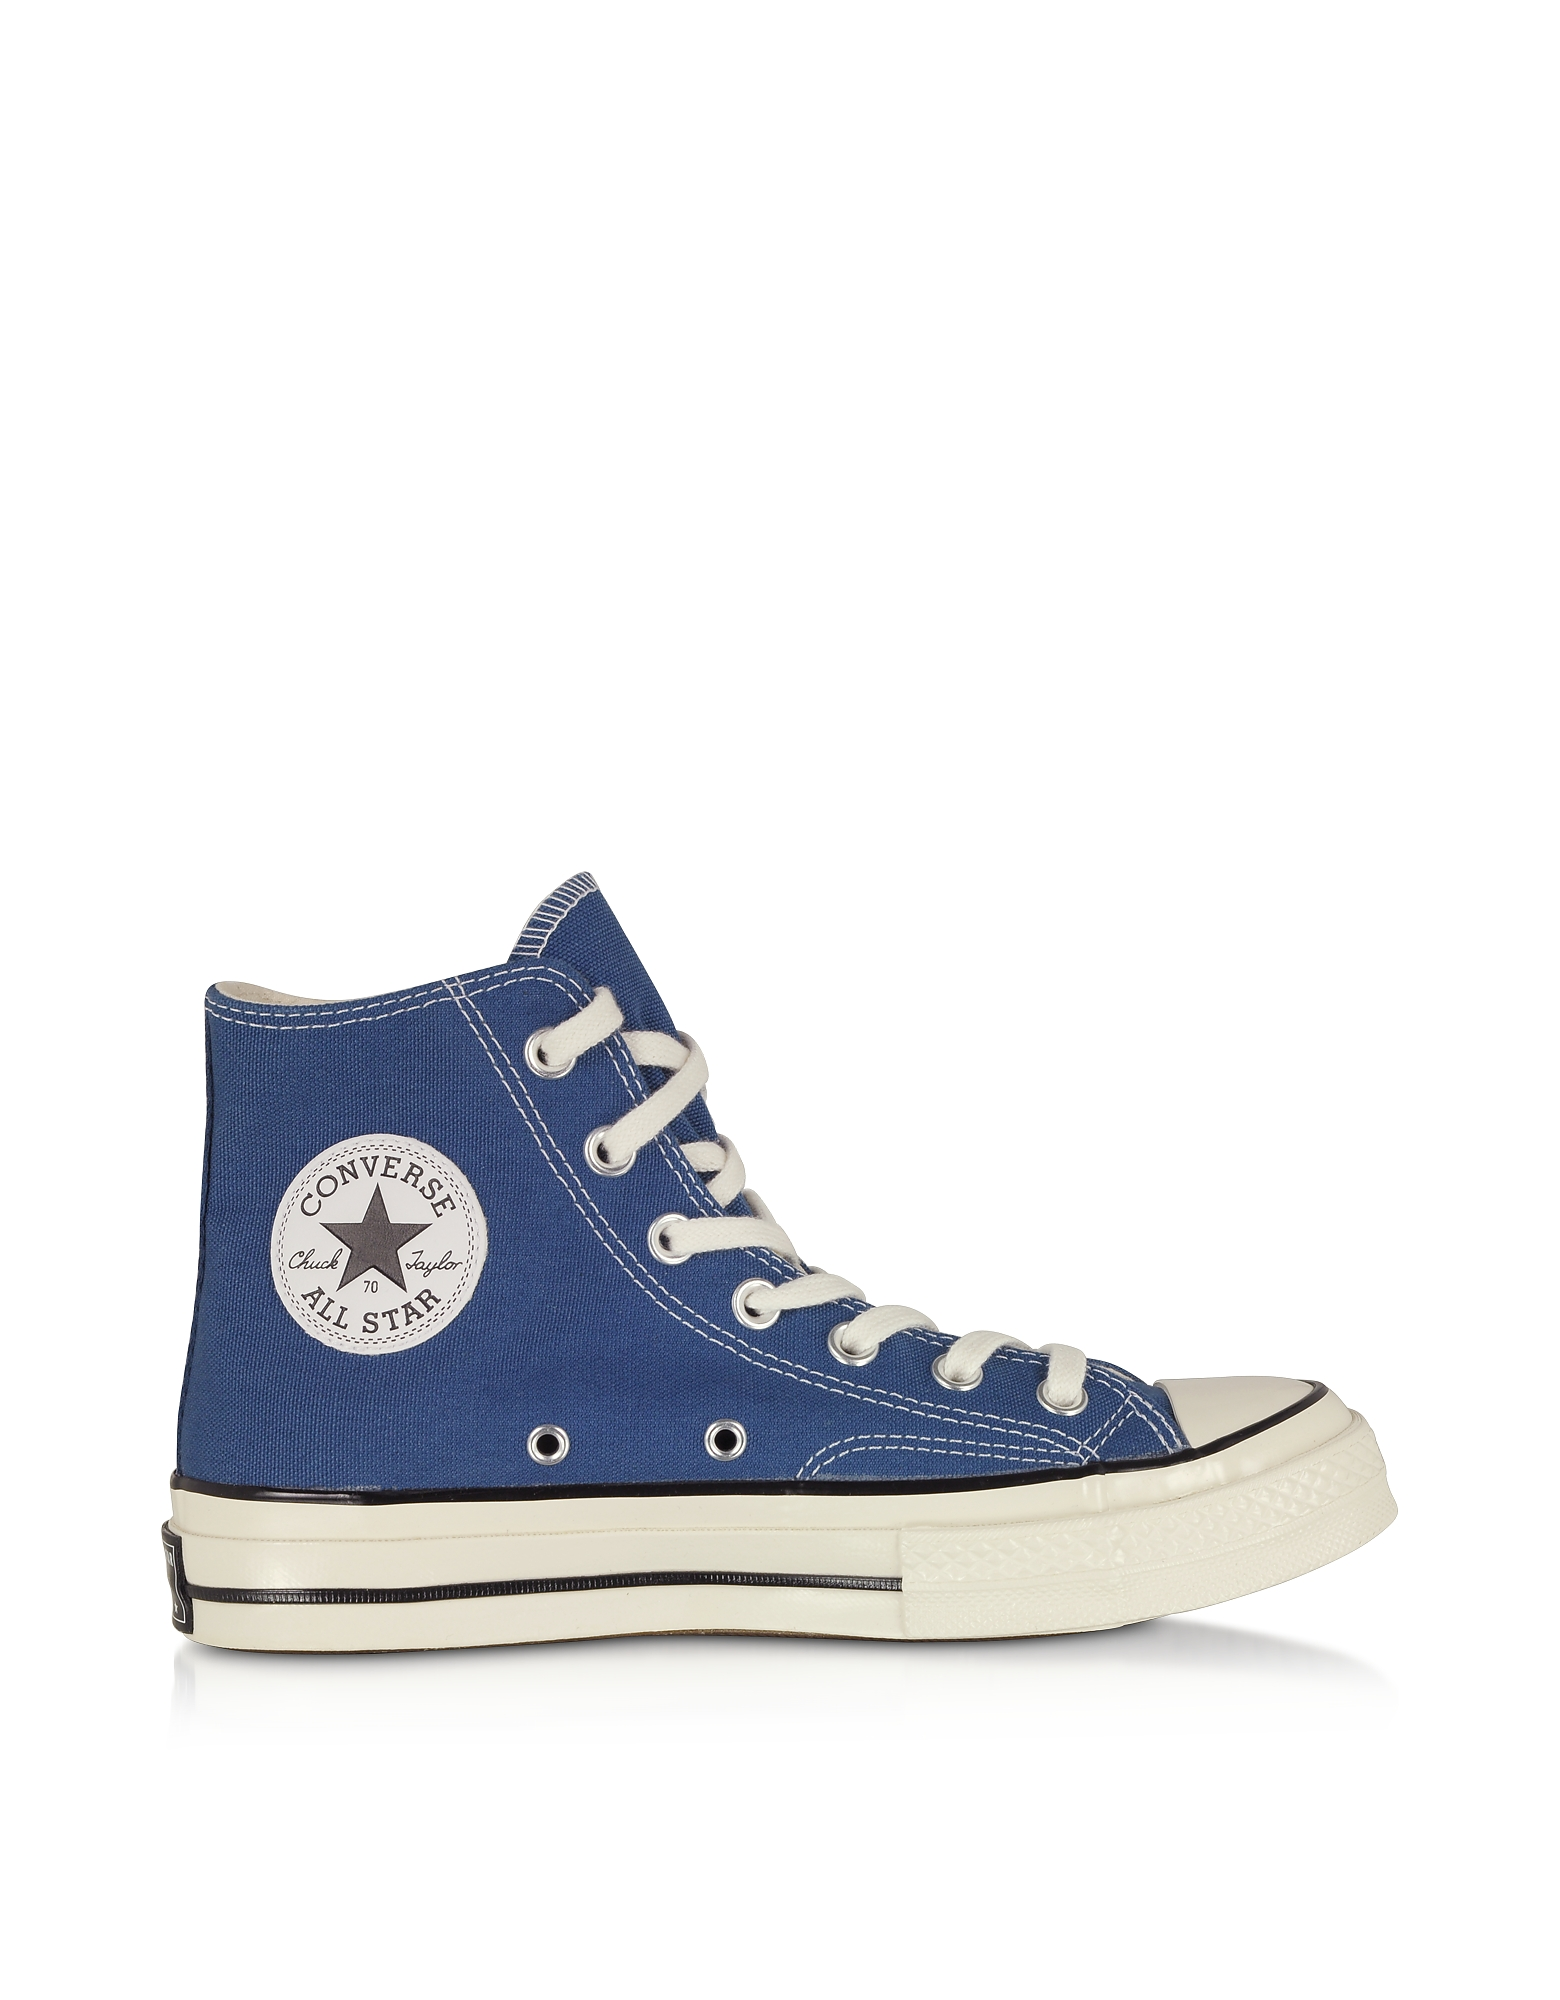 Converse Limited Edition Designer Shoes, Chuck 70 True Navy Unisex Sneakers